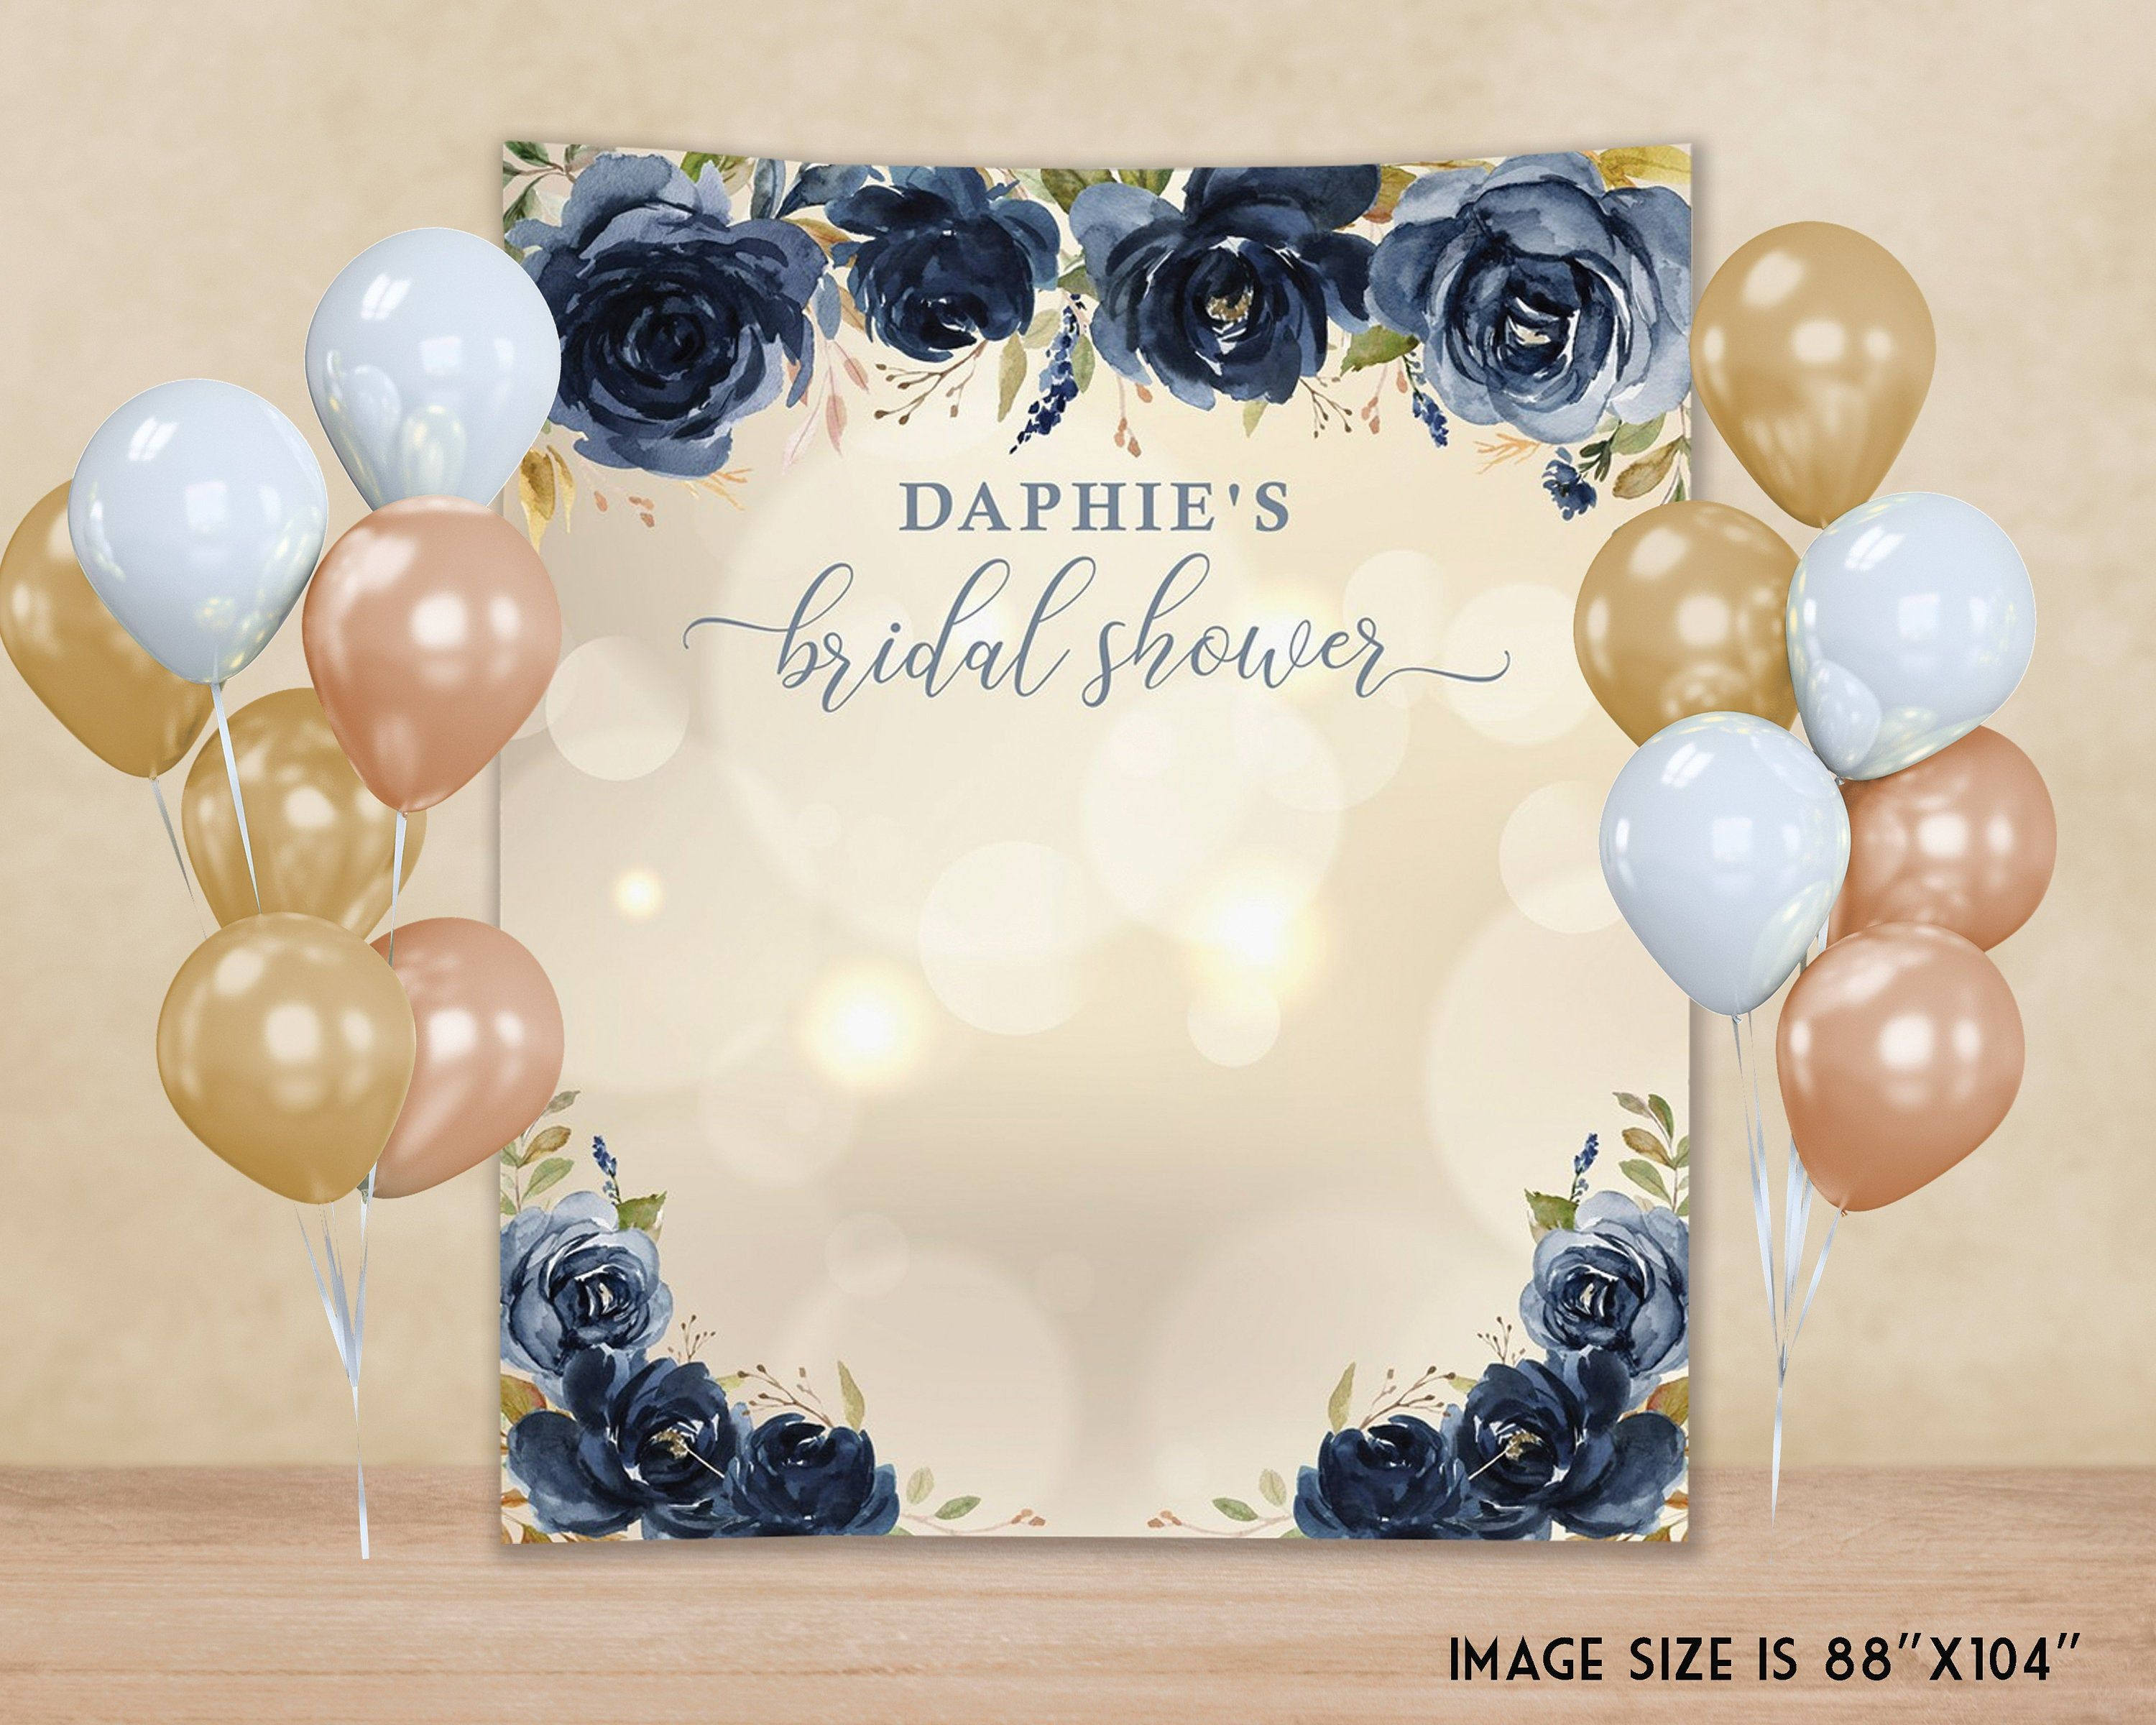 GoHeBe 5x7 or 7x5 Cotton Polyester Backdrop Personalized Custom Baby Shower Birthday Party Bridal Shower Wedding Engagement Party Retirement Party Backdrop Banner